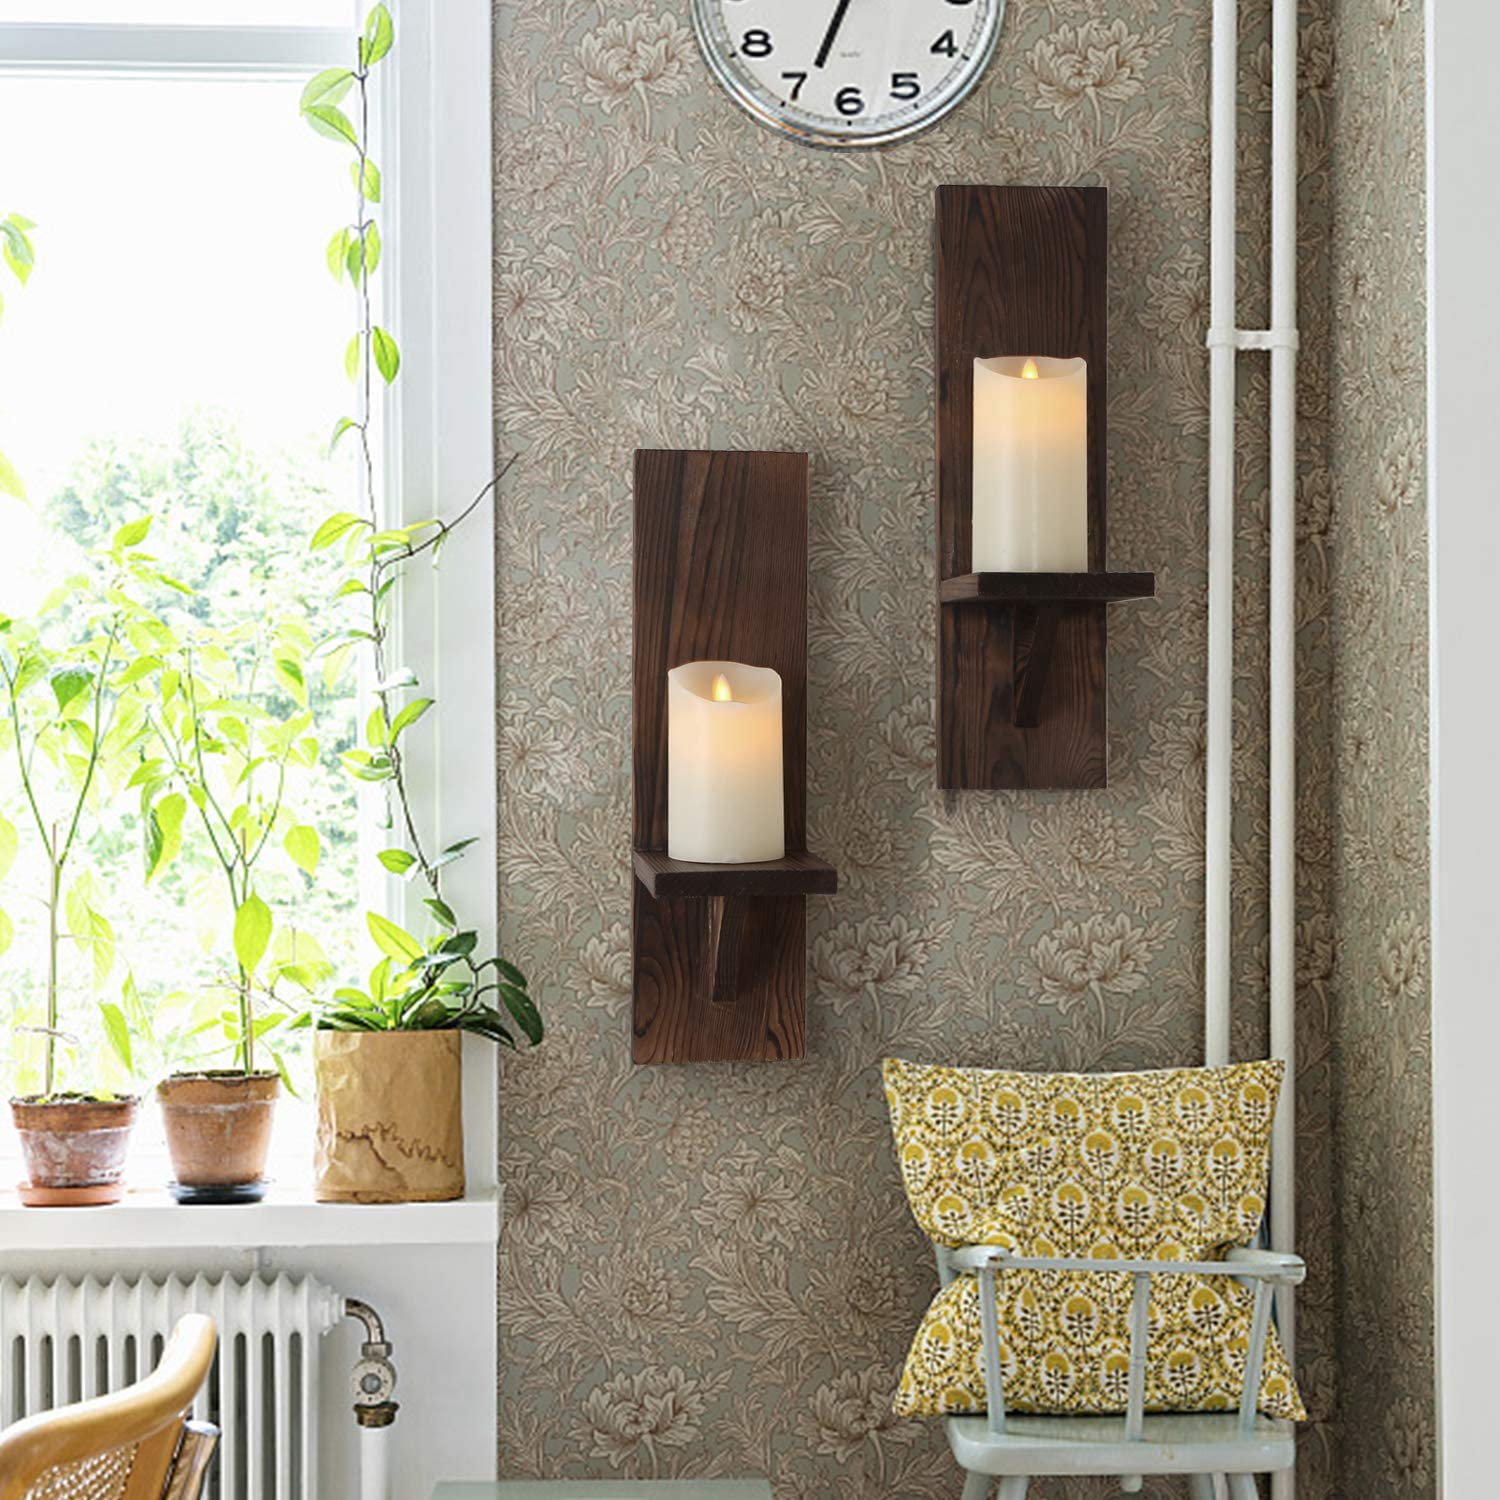 Farmhouse Candle Flowers Vase Wall Shelf for Bathroom Bedroom Living Room Kitchen Office and More DOCMON Rustic Wall Decor Floating Shelves Wall Mount Rustic Candle Holders